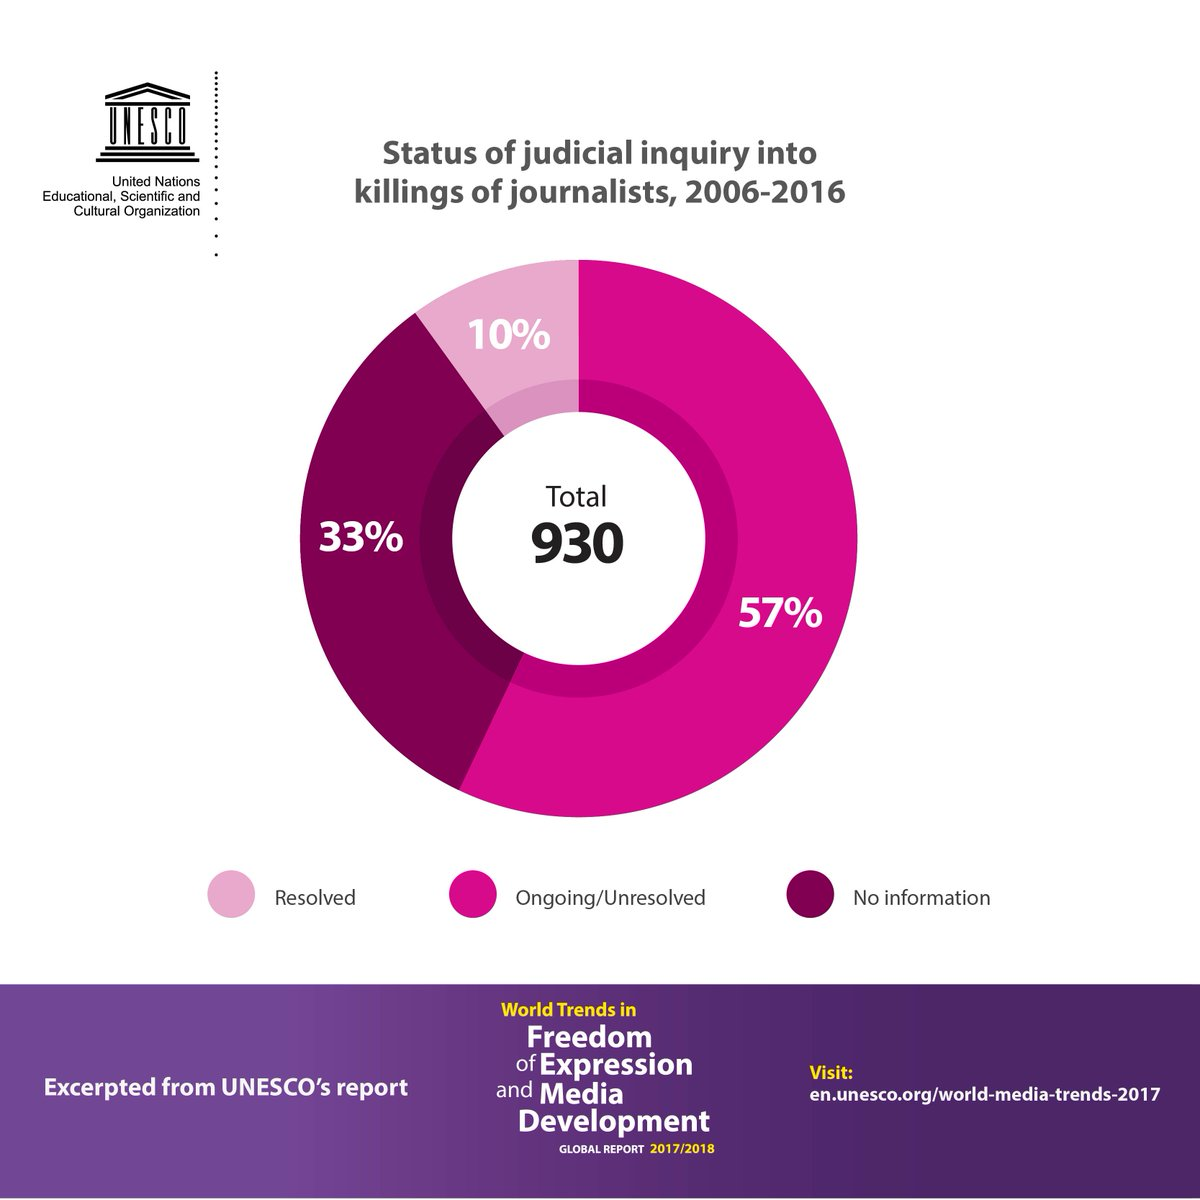 evattey: RT UNESCO: 1 2 3 4 5 6 7 8 9 10 20 30 40 50 60 70 80 90 100 200 300 400 500 600 700 800 930 journalists killed between 2006 & 2016.   How many more?   Time to #EndImpunity for crimes against Journalists      http:// on.unesco.org/2zoduzB       #Jour… pic.twitter.com/5WgN14VCax